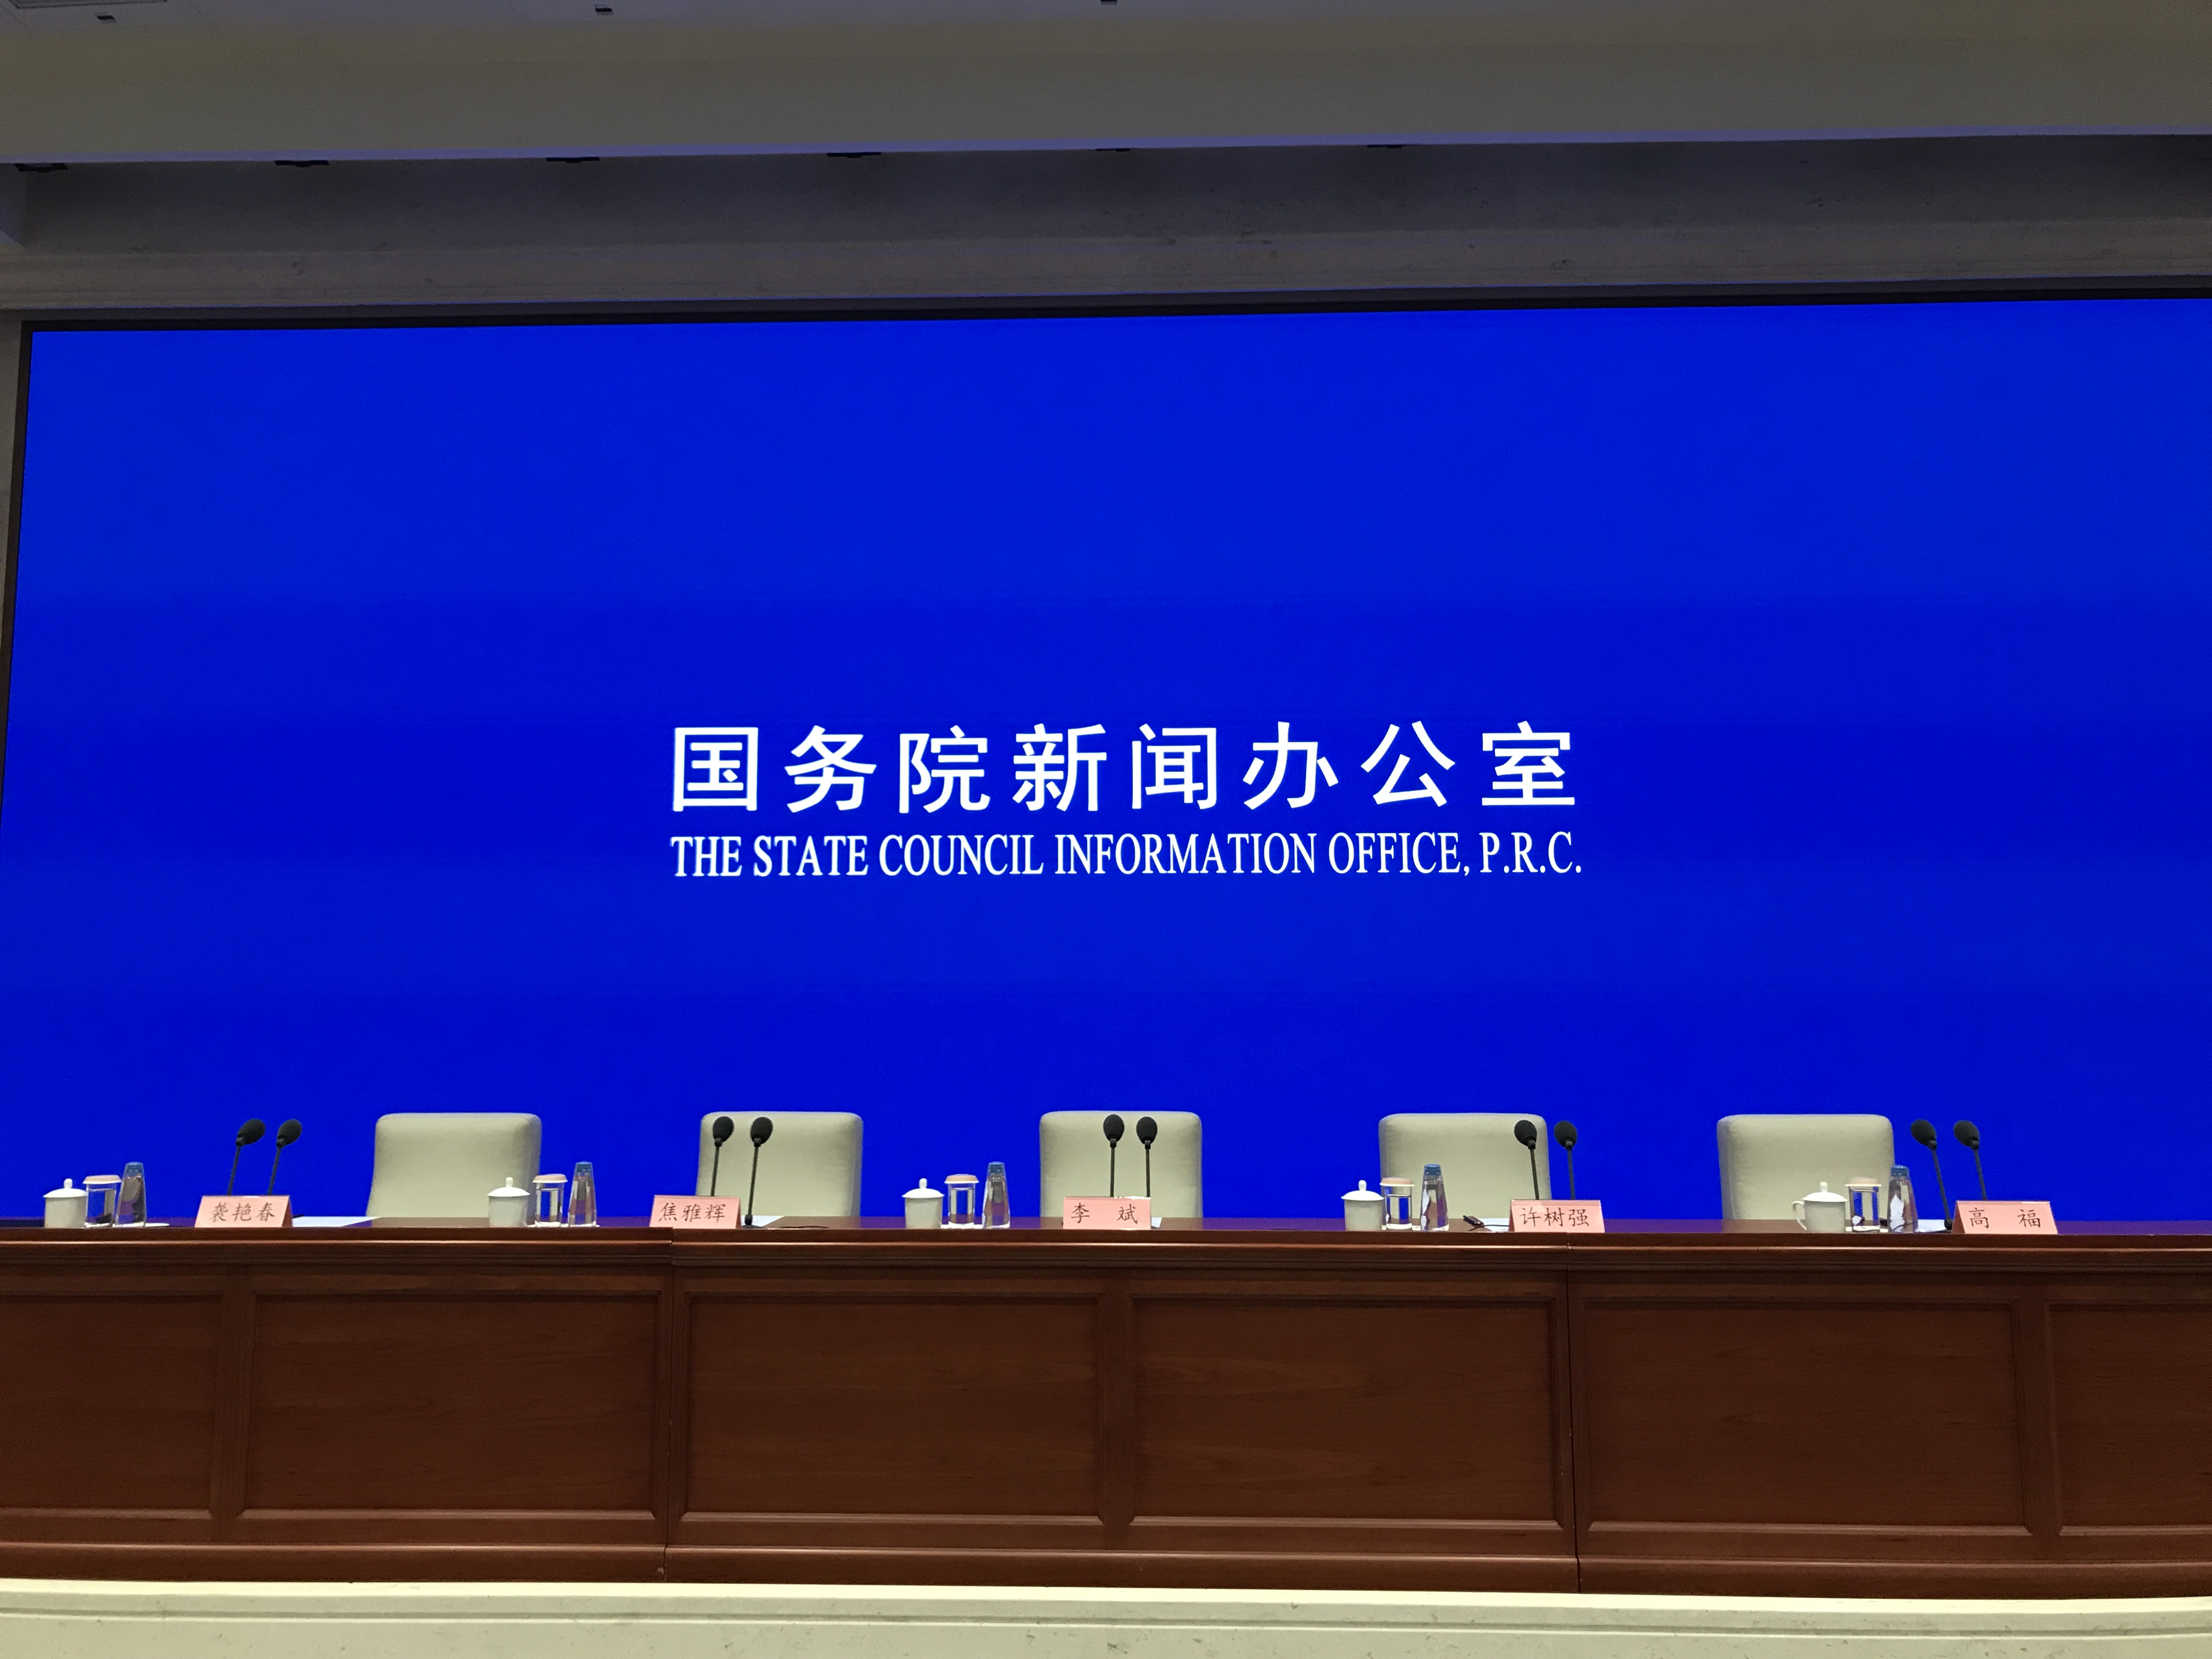 China's SCIO to hold press conference on Wednesday morning